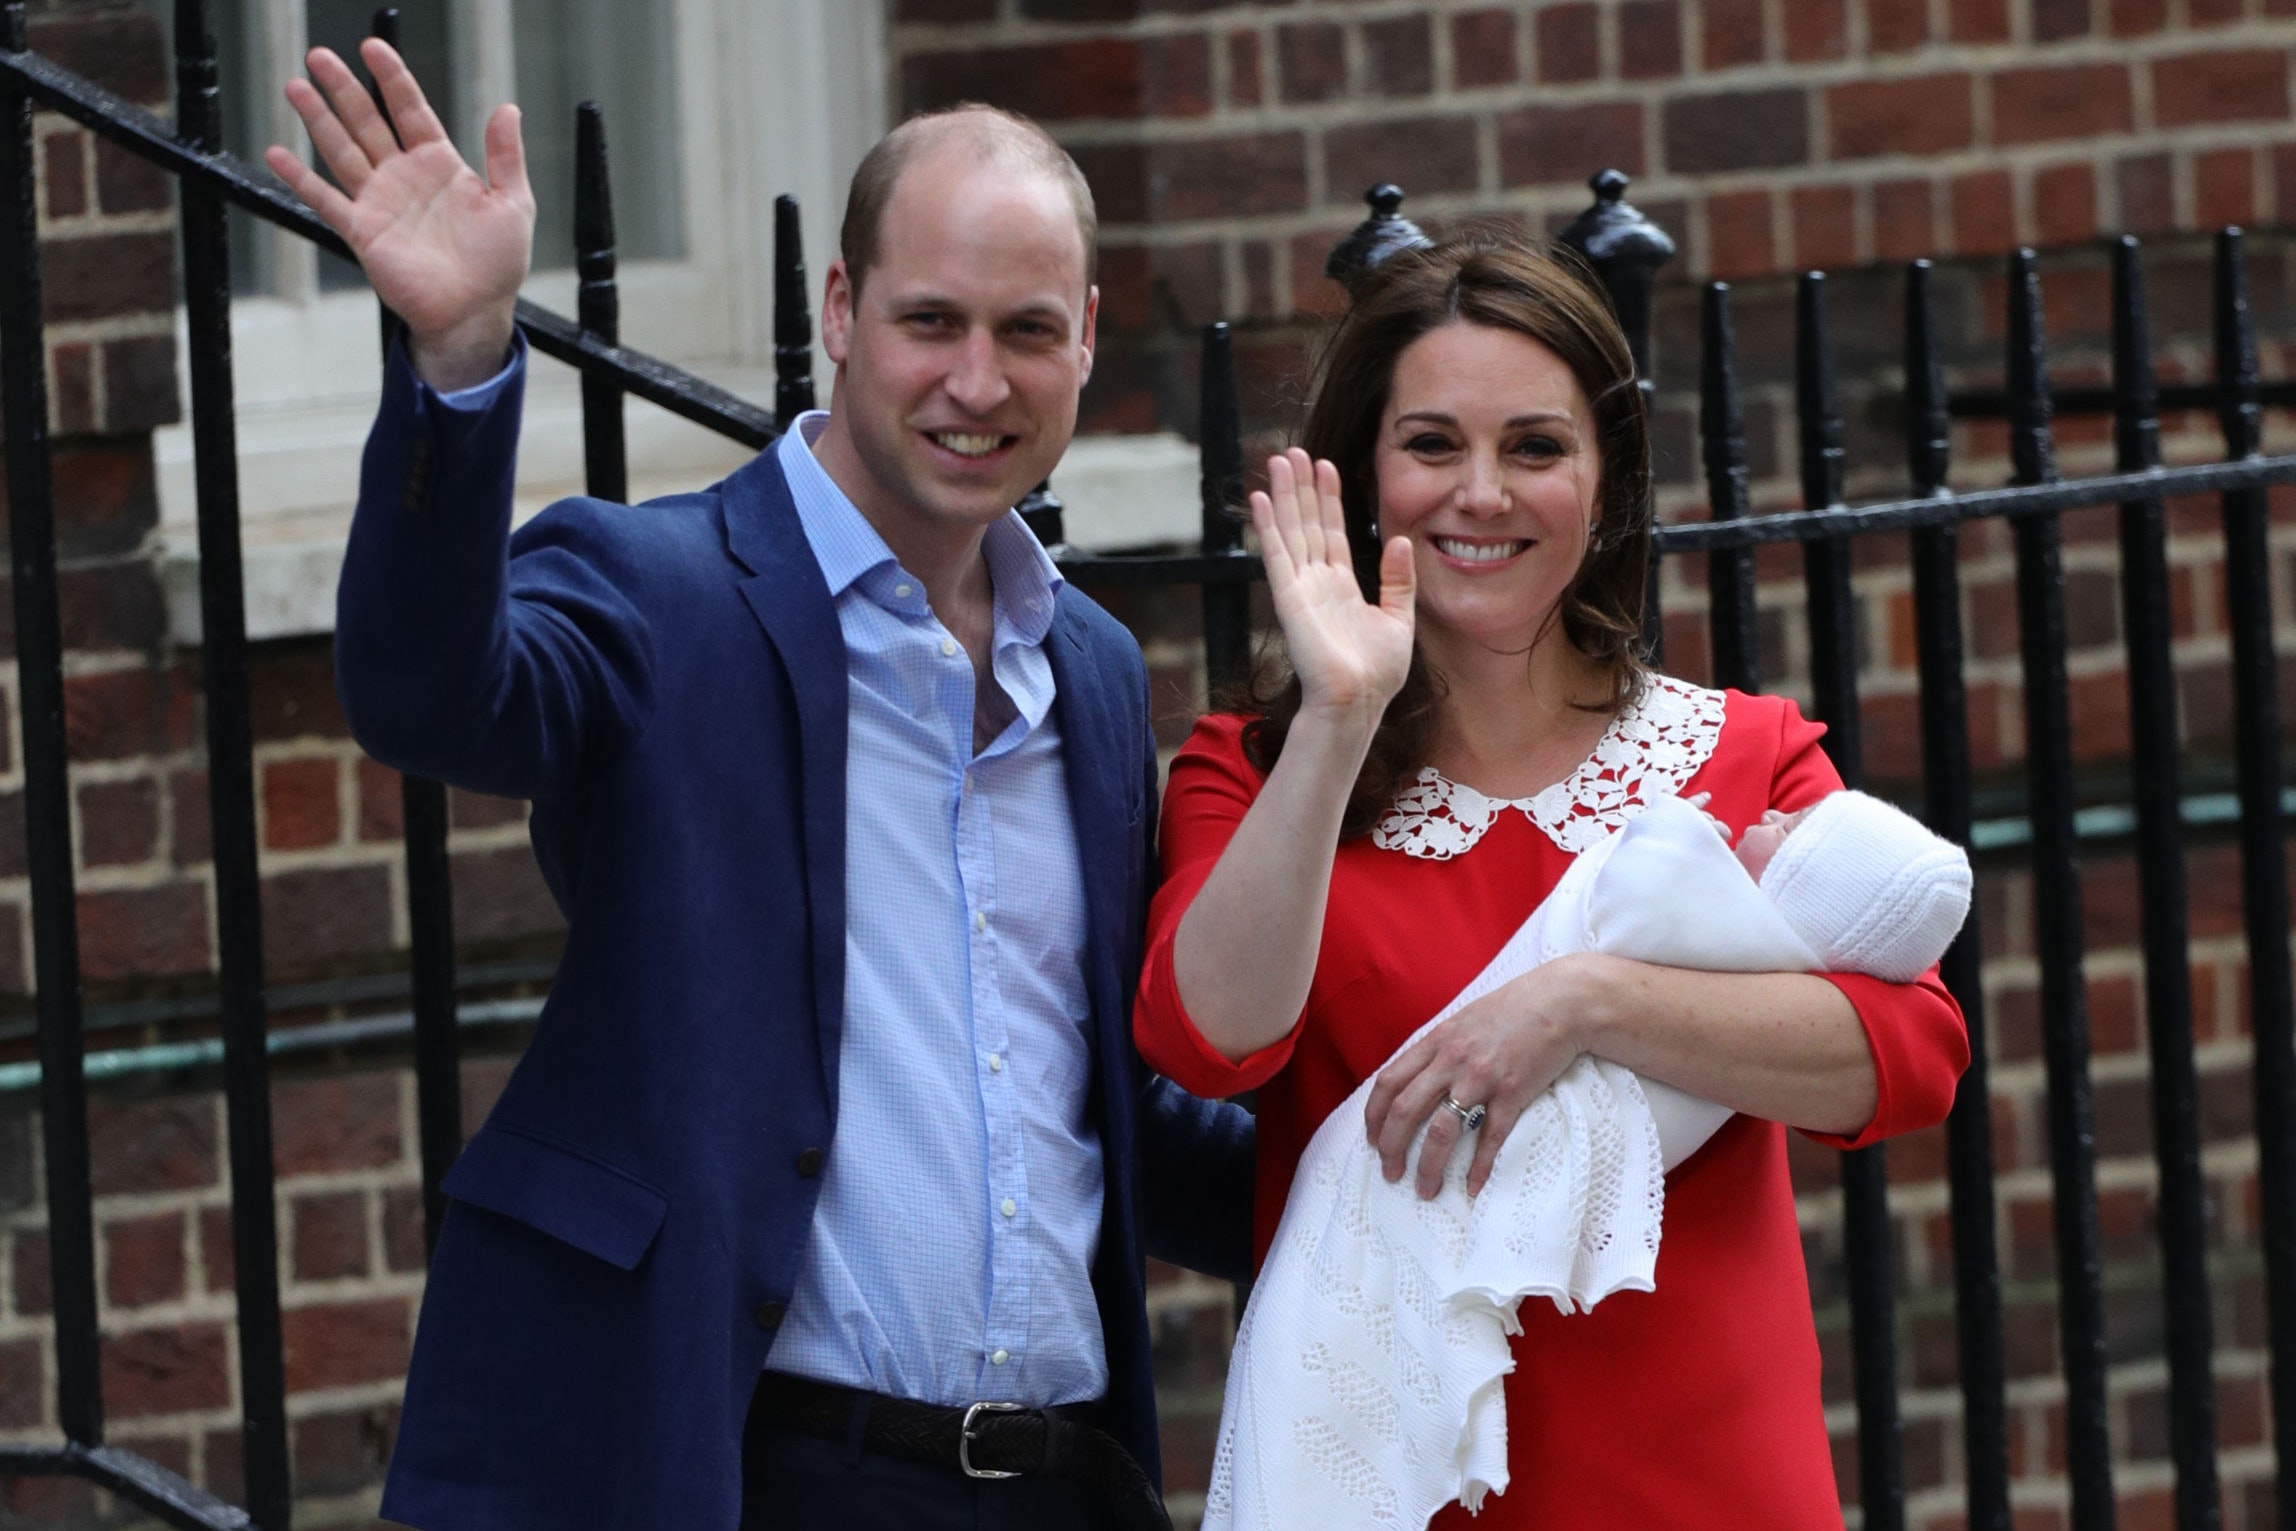 The Duke and Duchess of Cambridge and their newborn son outside the Lindo Wing at St Mary's Hospital in Paddington, London (Aaron Chown/PA)